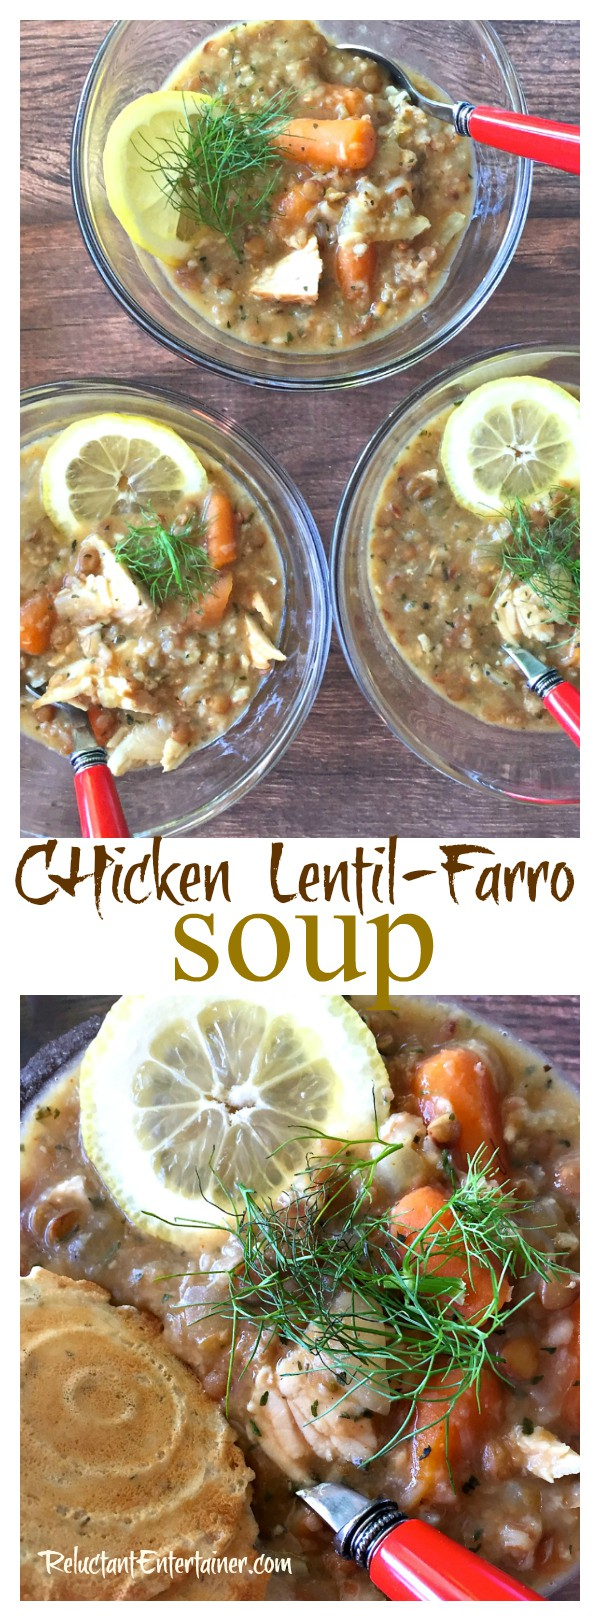 Chicken Lentil-Farro Soup - easy crock pot meal with fresh grains and vegetables